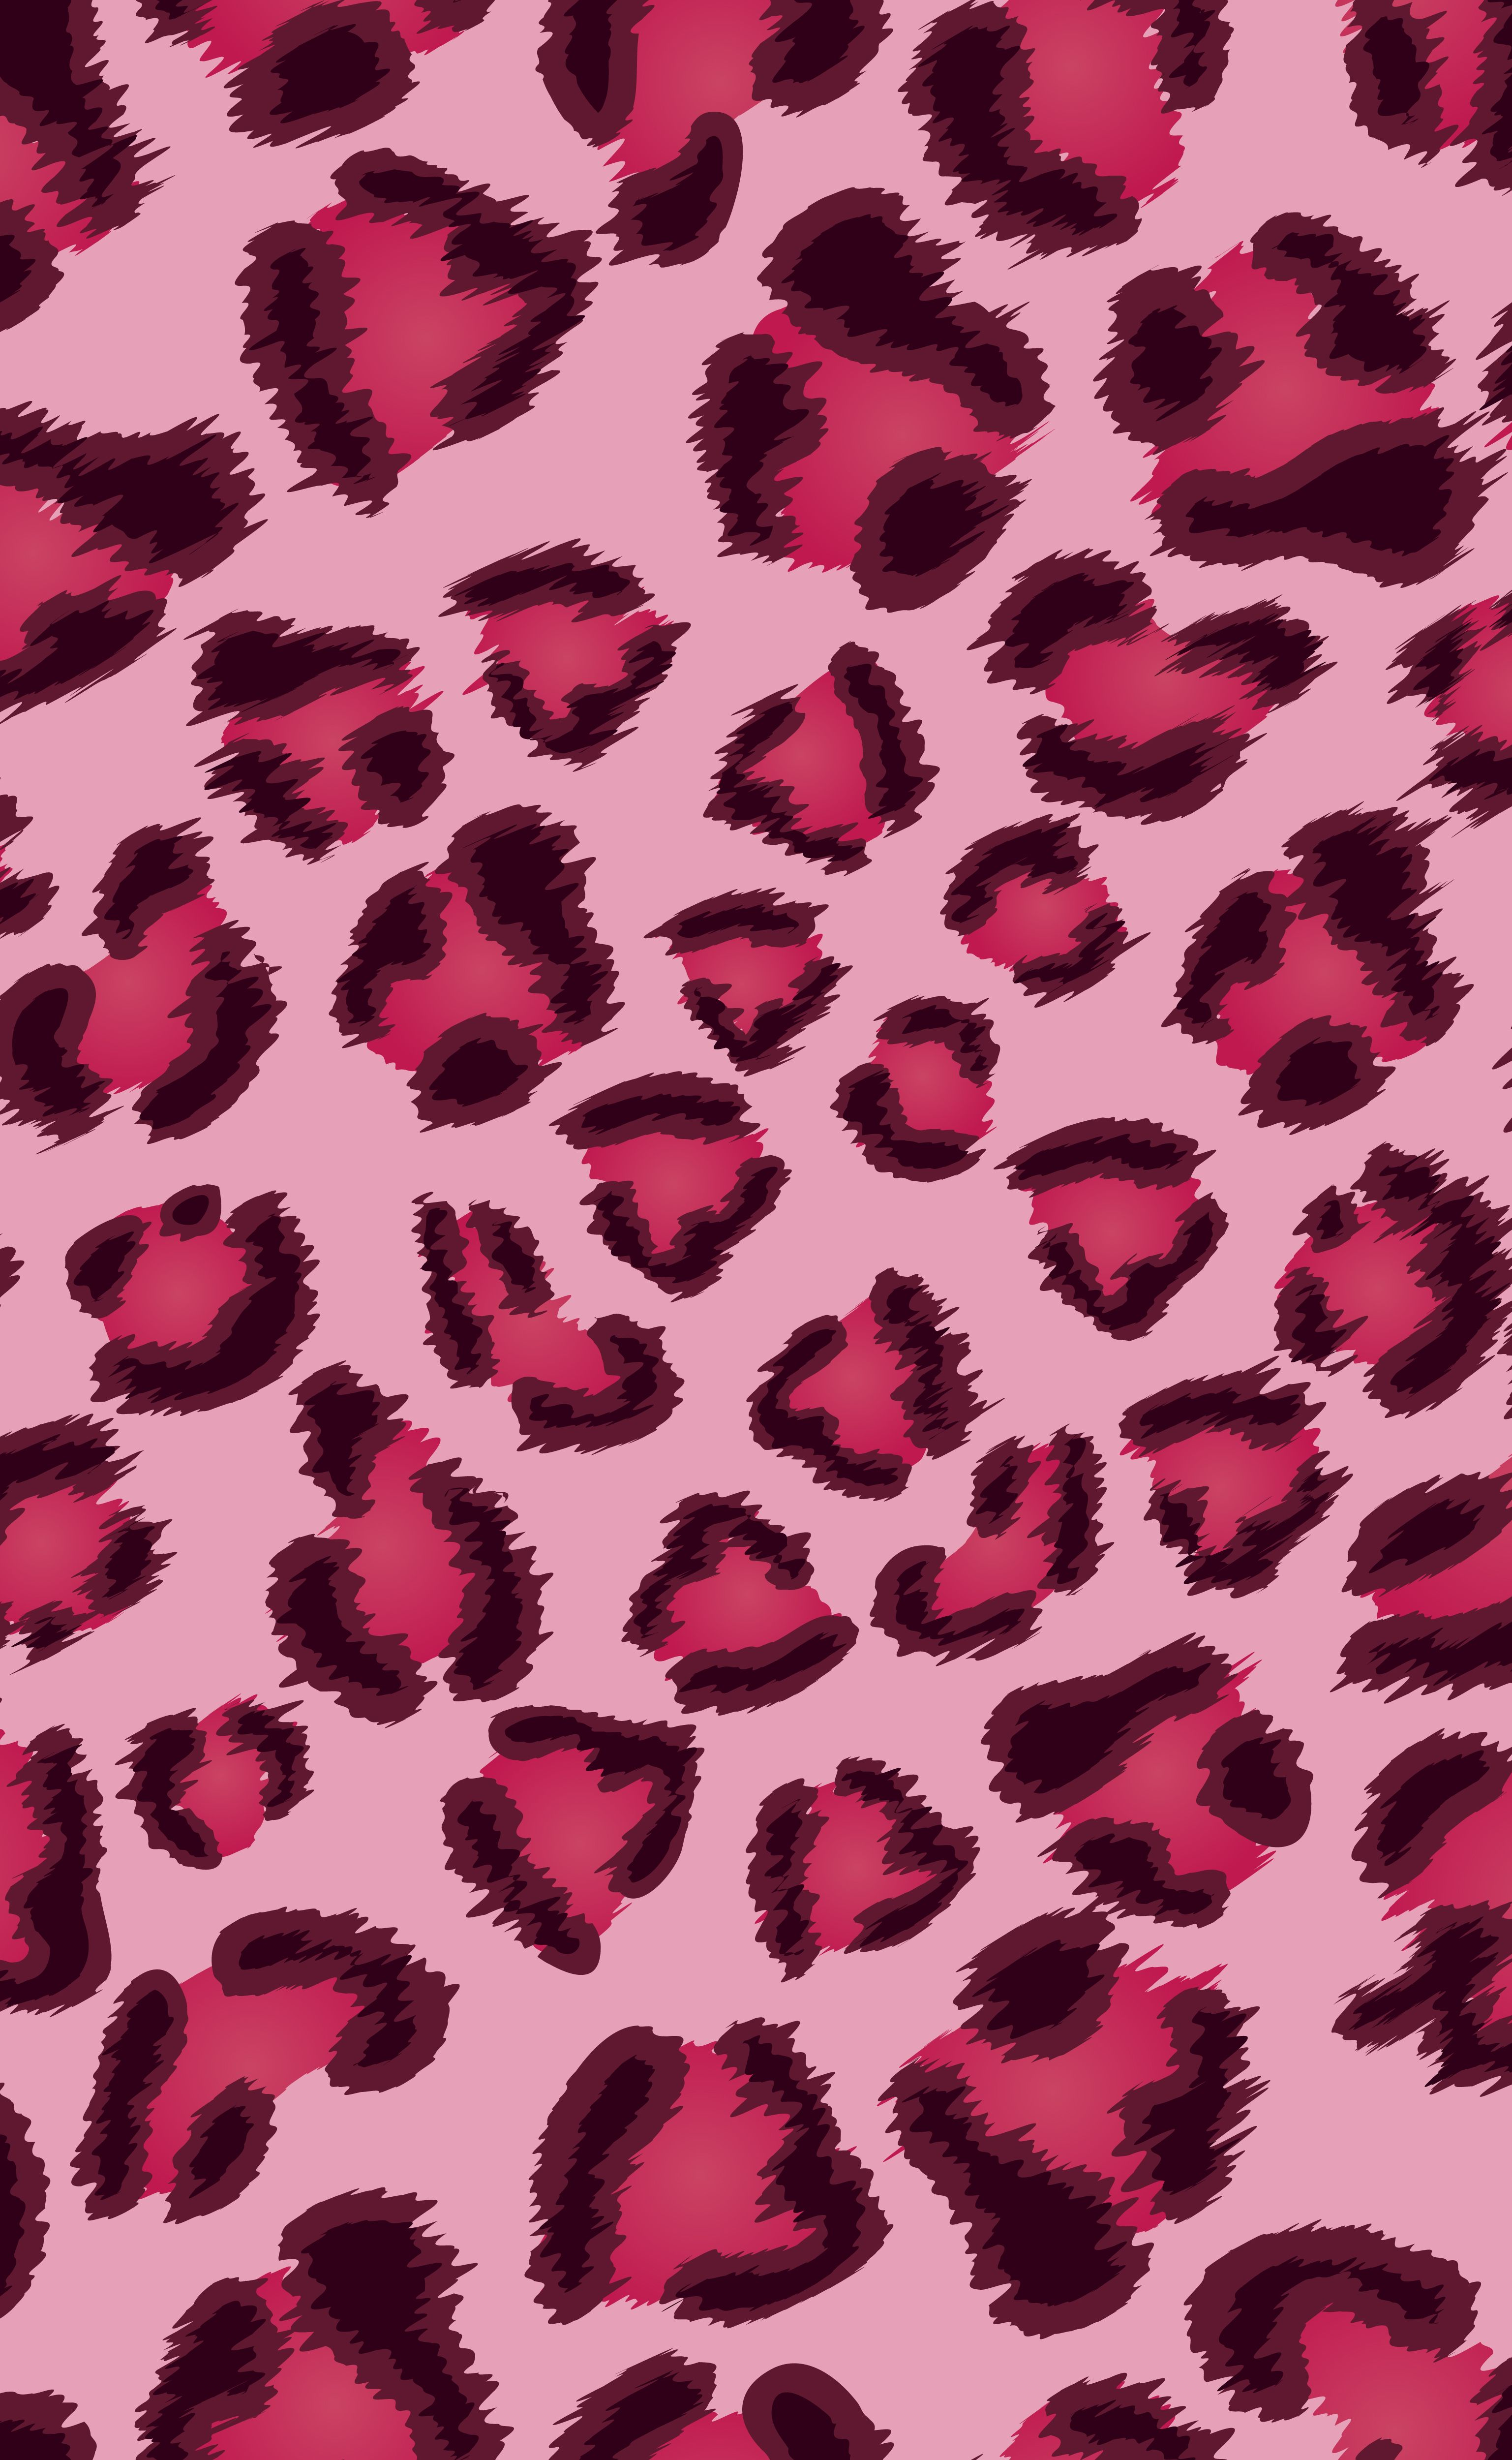 Pink Leopard Texture (with Claret Red Spots). Pink